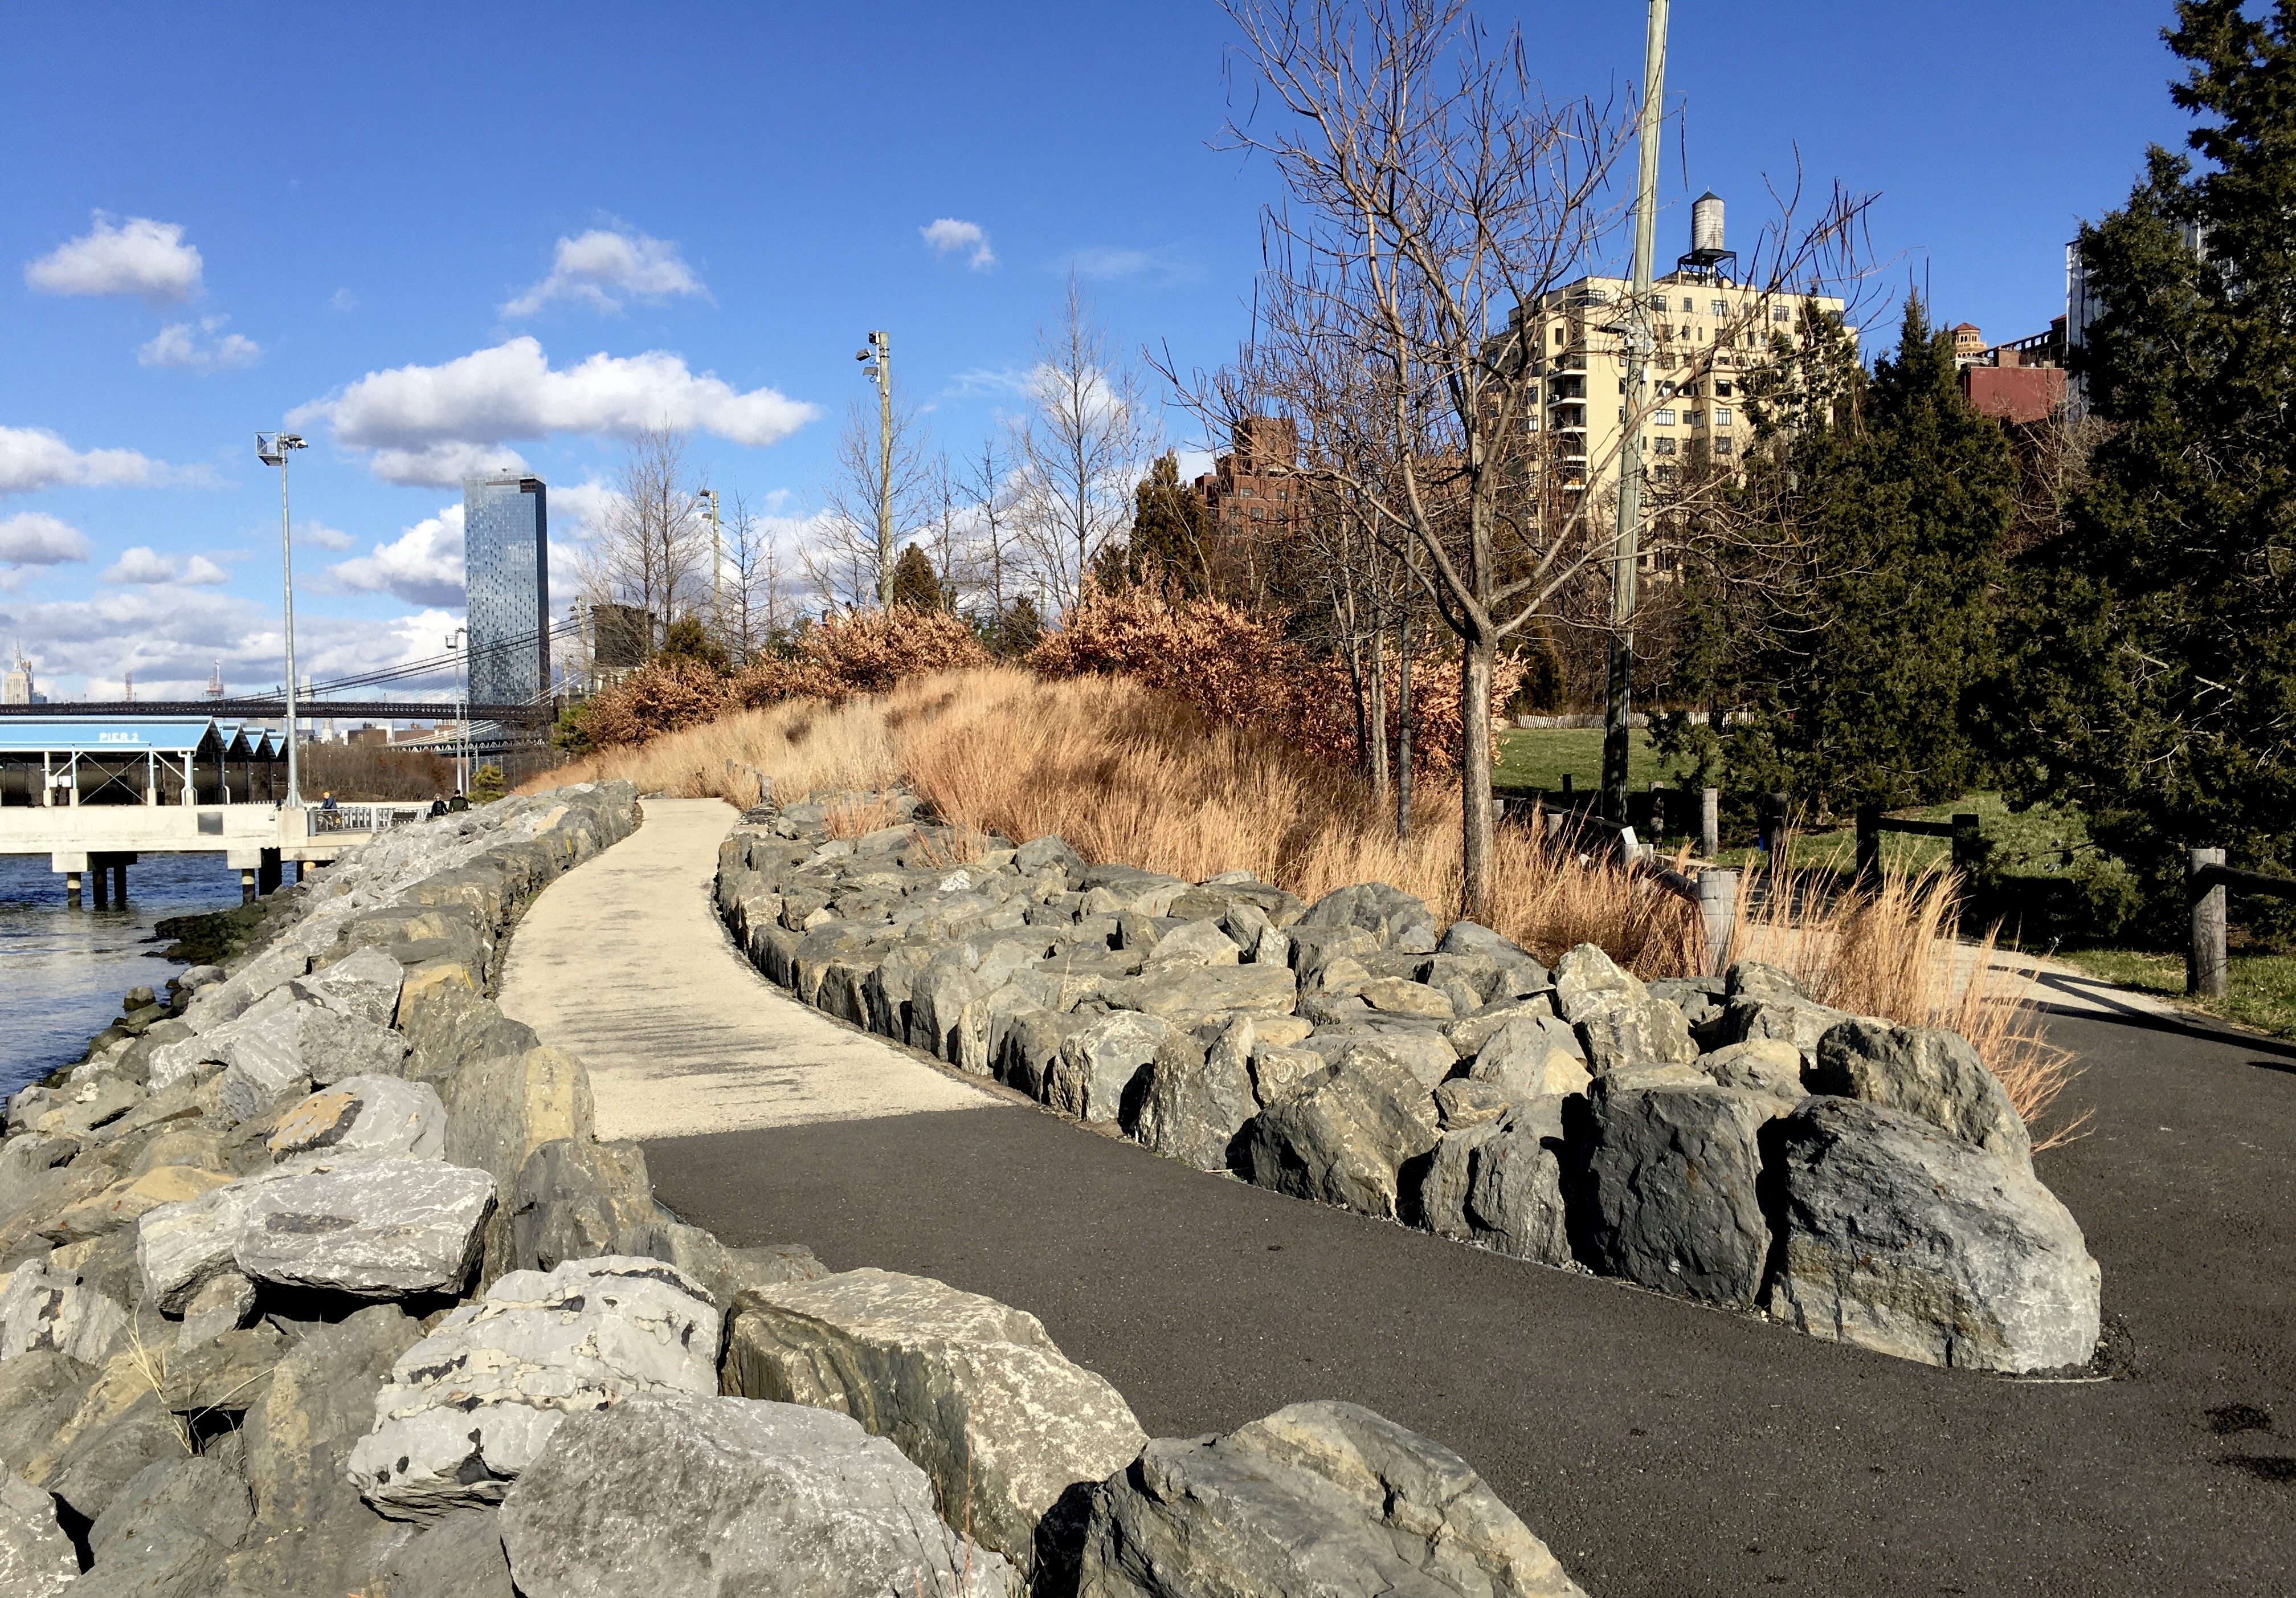 These paths can be found in Brooklyn Bridge Park's Pier 3 uplands. Photo: Lore Croghan/Brooklyn Eagle